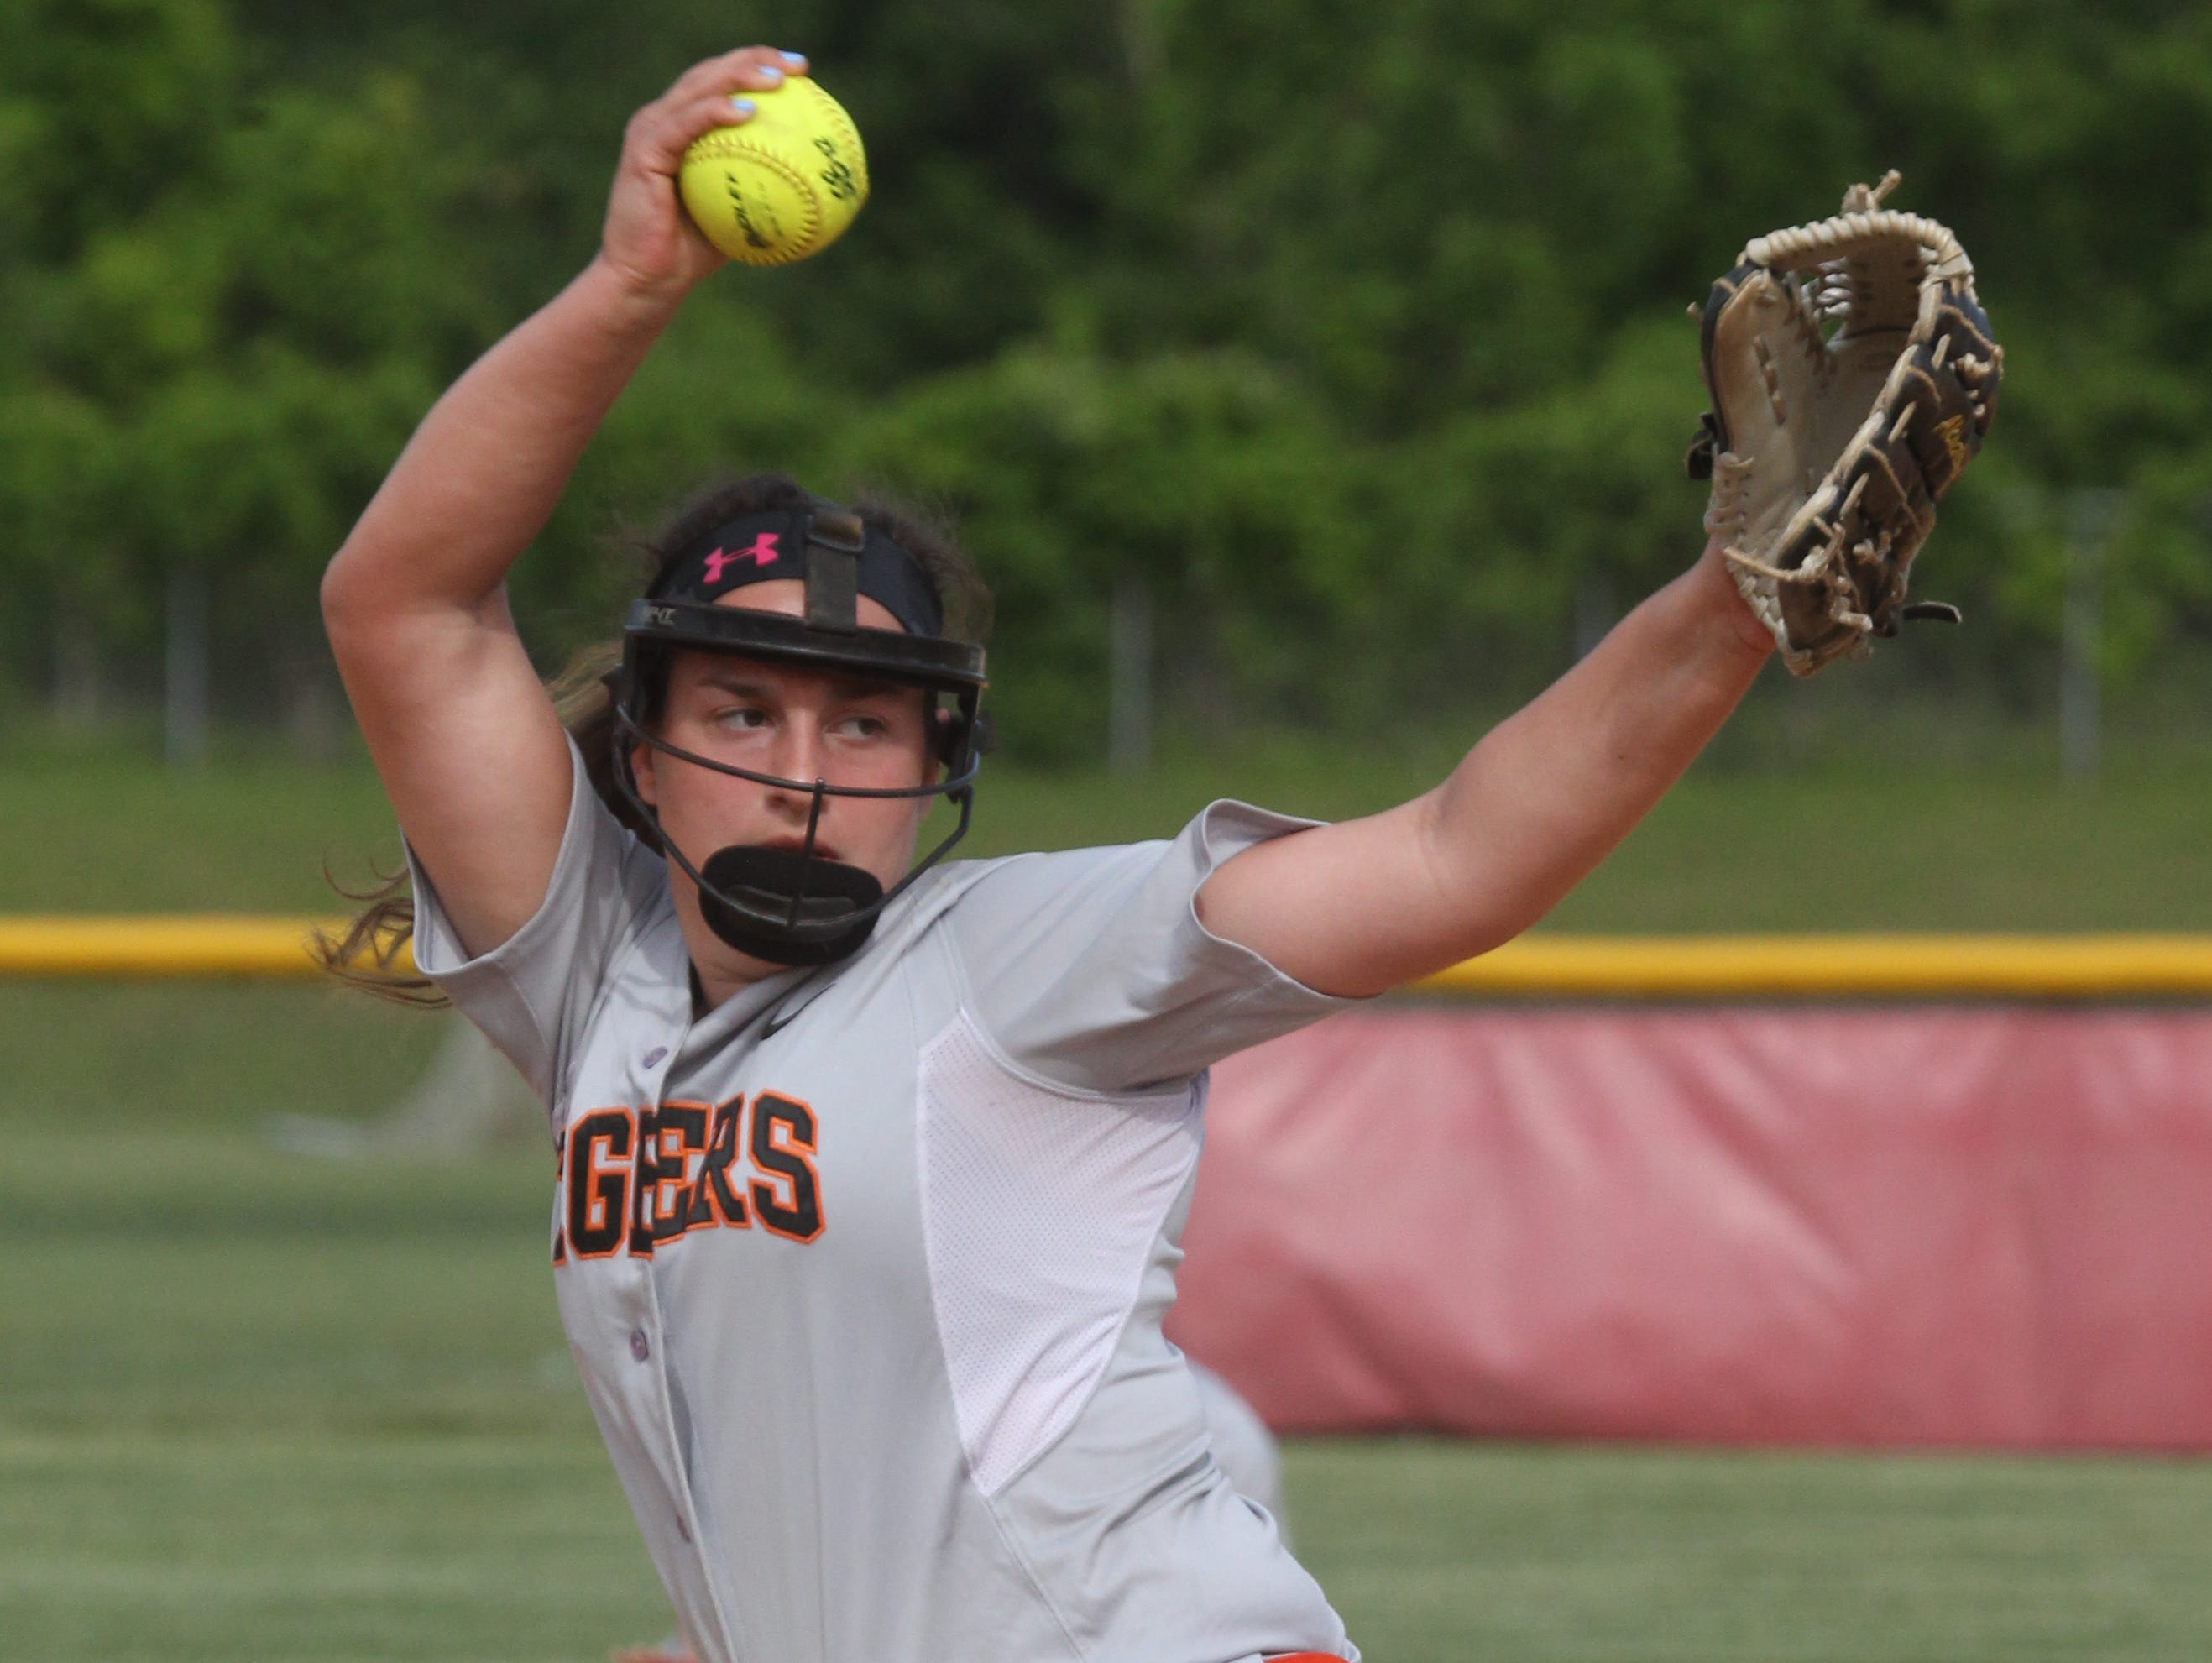 Tuckahoe's Cassie McGrath delivers a pitch during the Class C softball section final with Haldane at North Rockland May 29, 2015. Tuckahoe won 3-2.